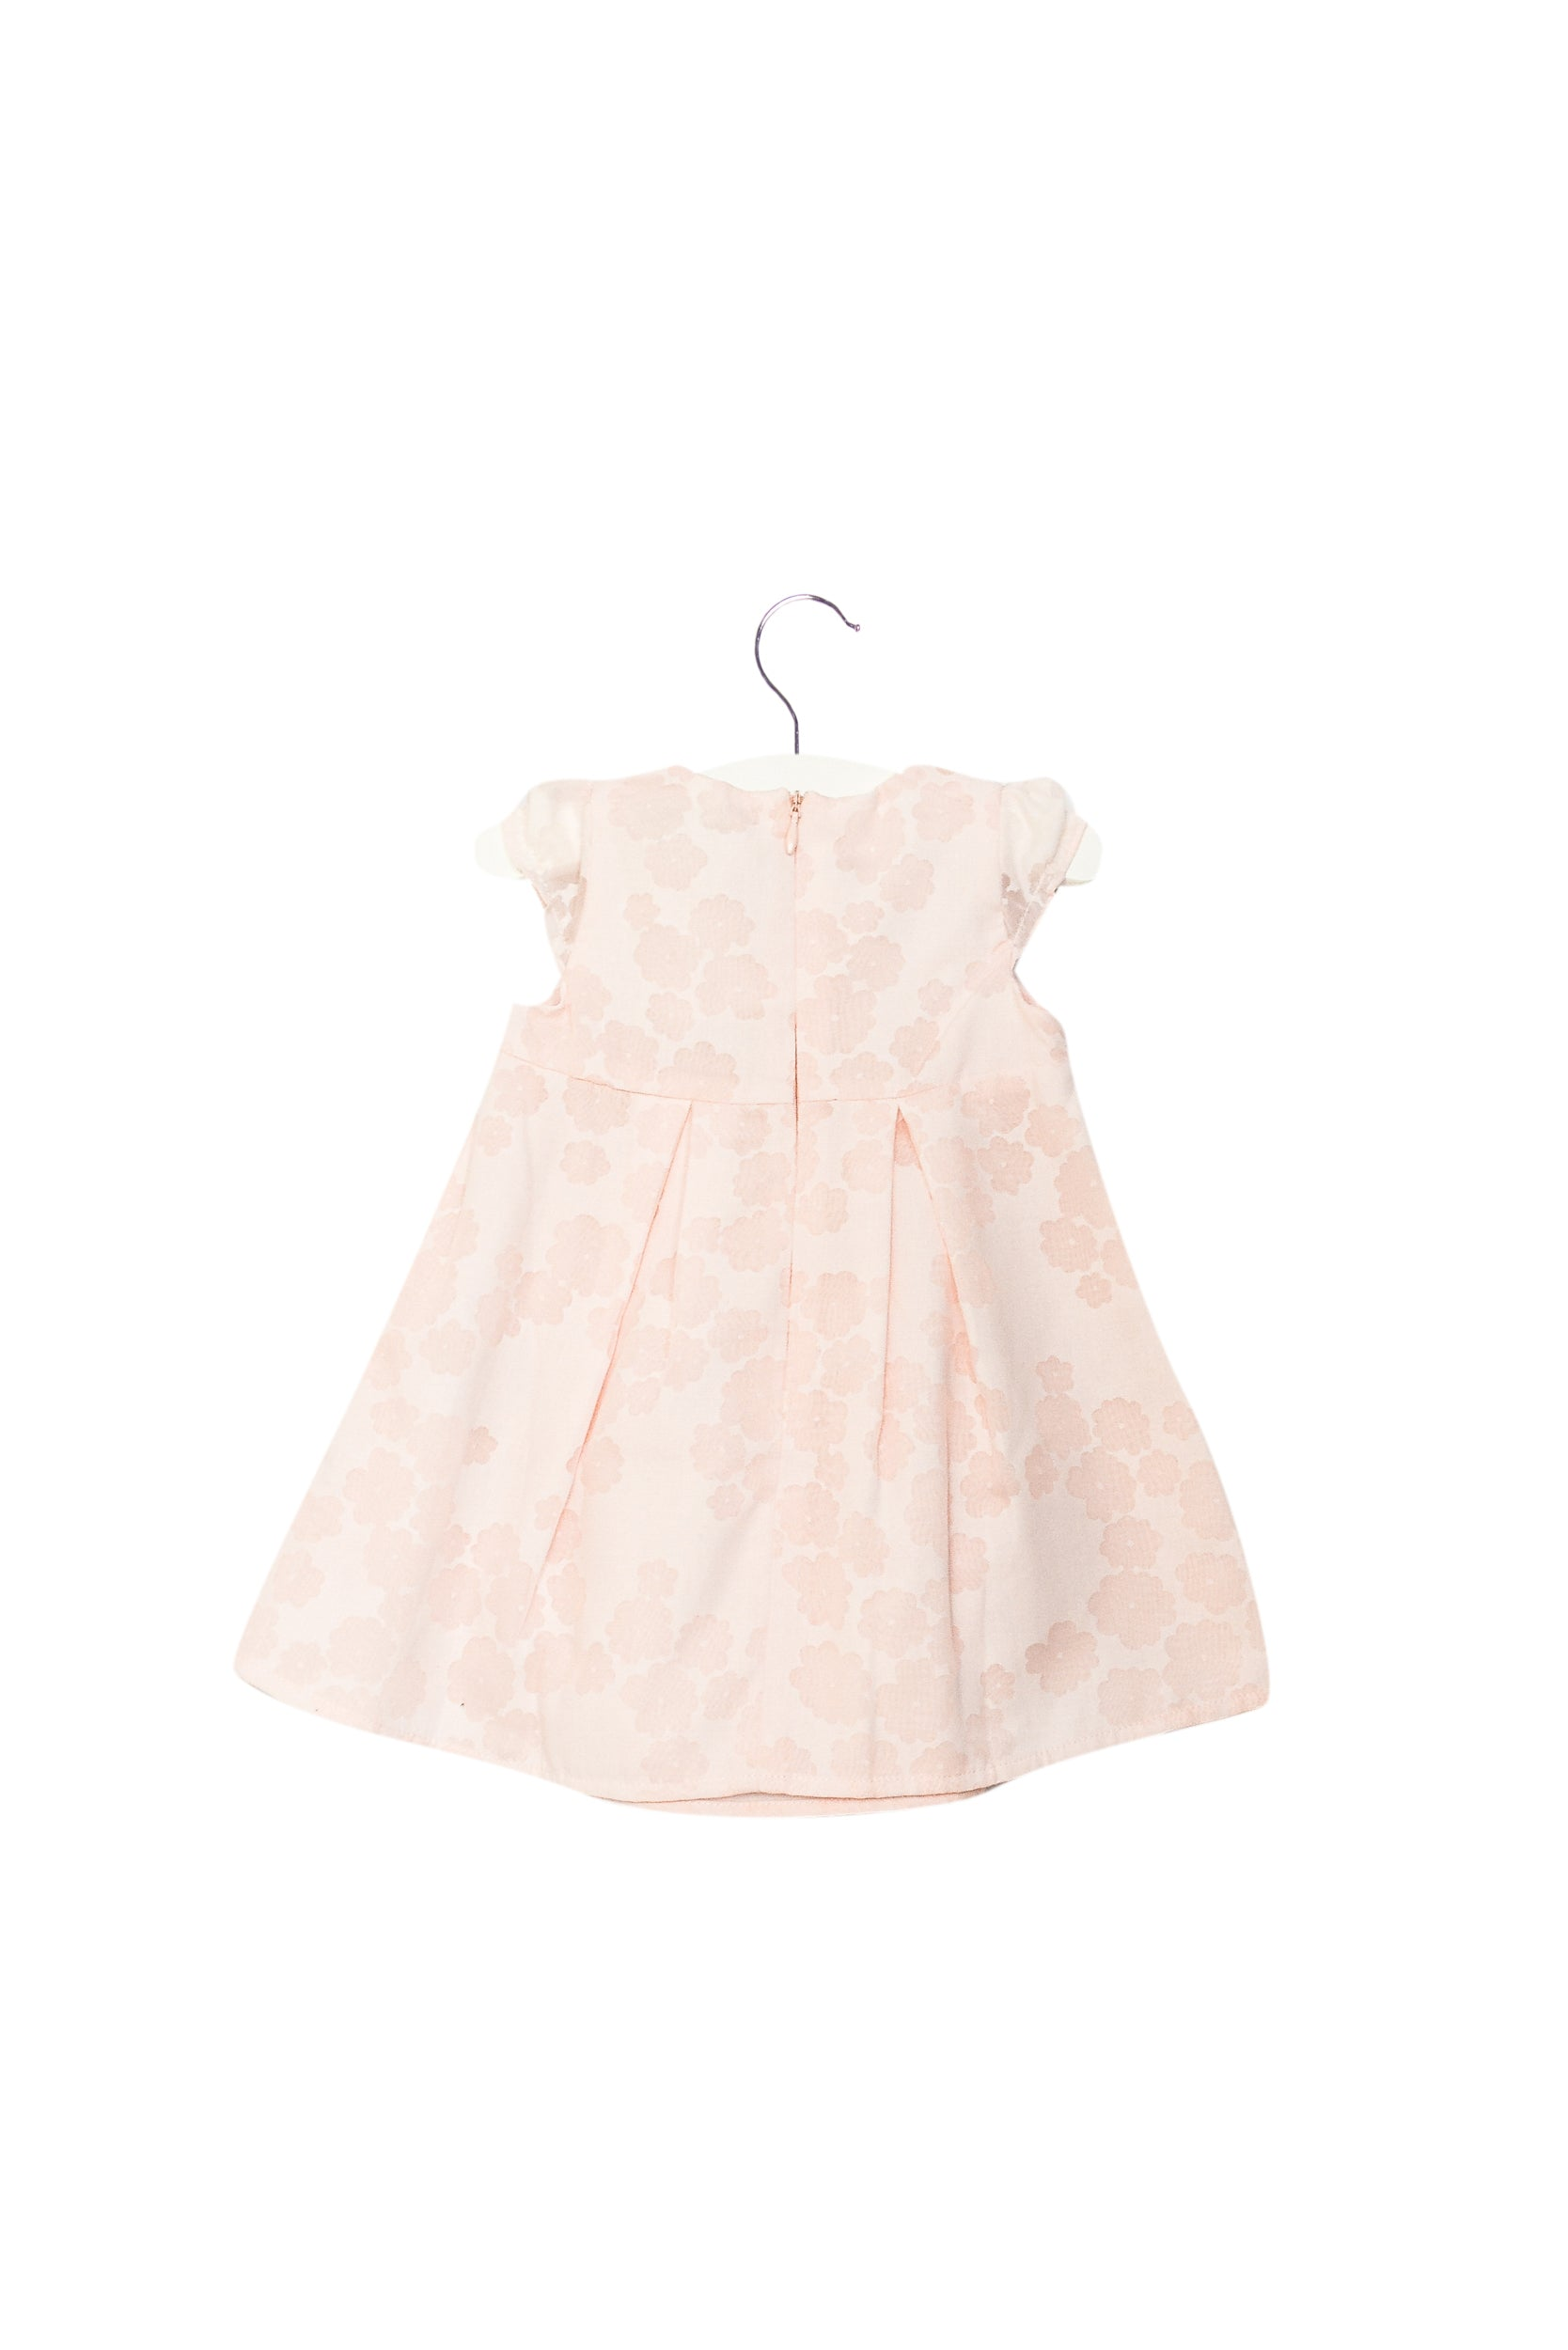 Short Sleeve Dress 12M at Retykle